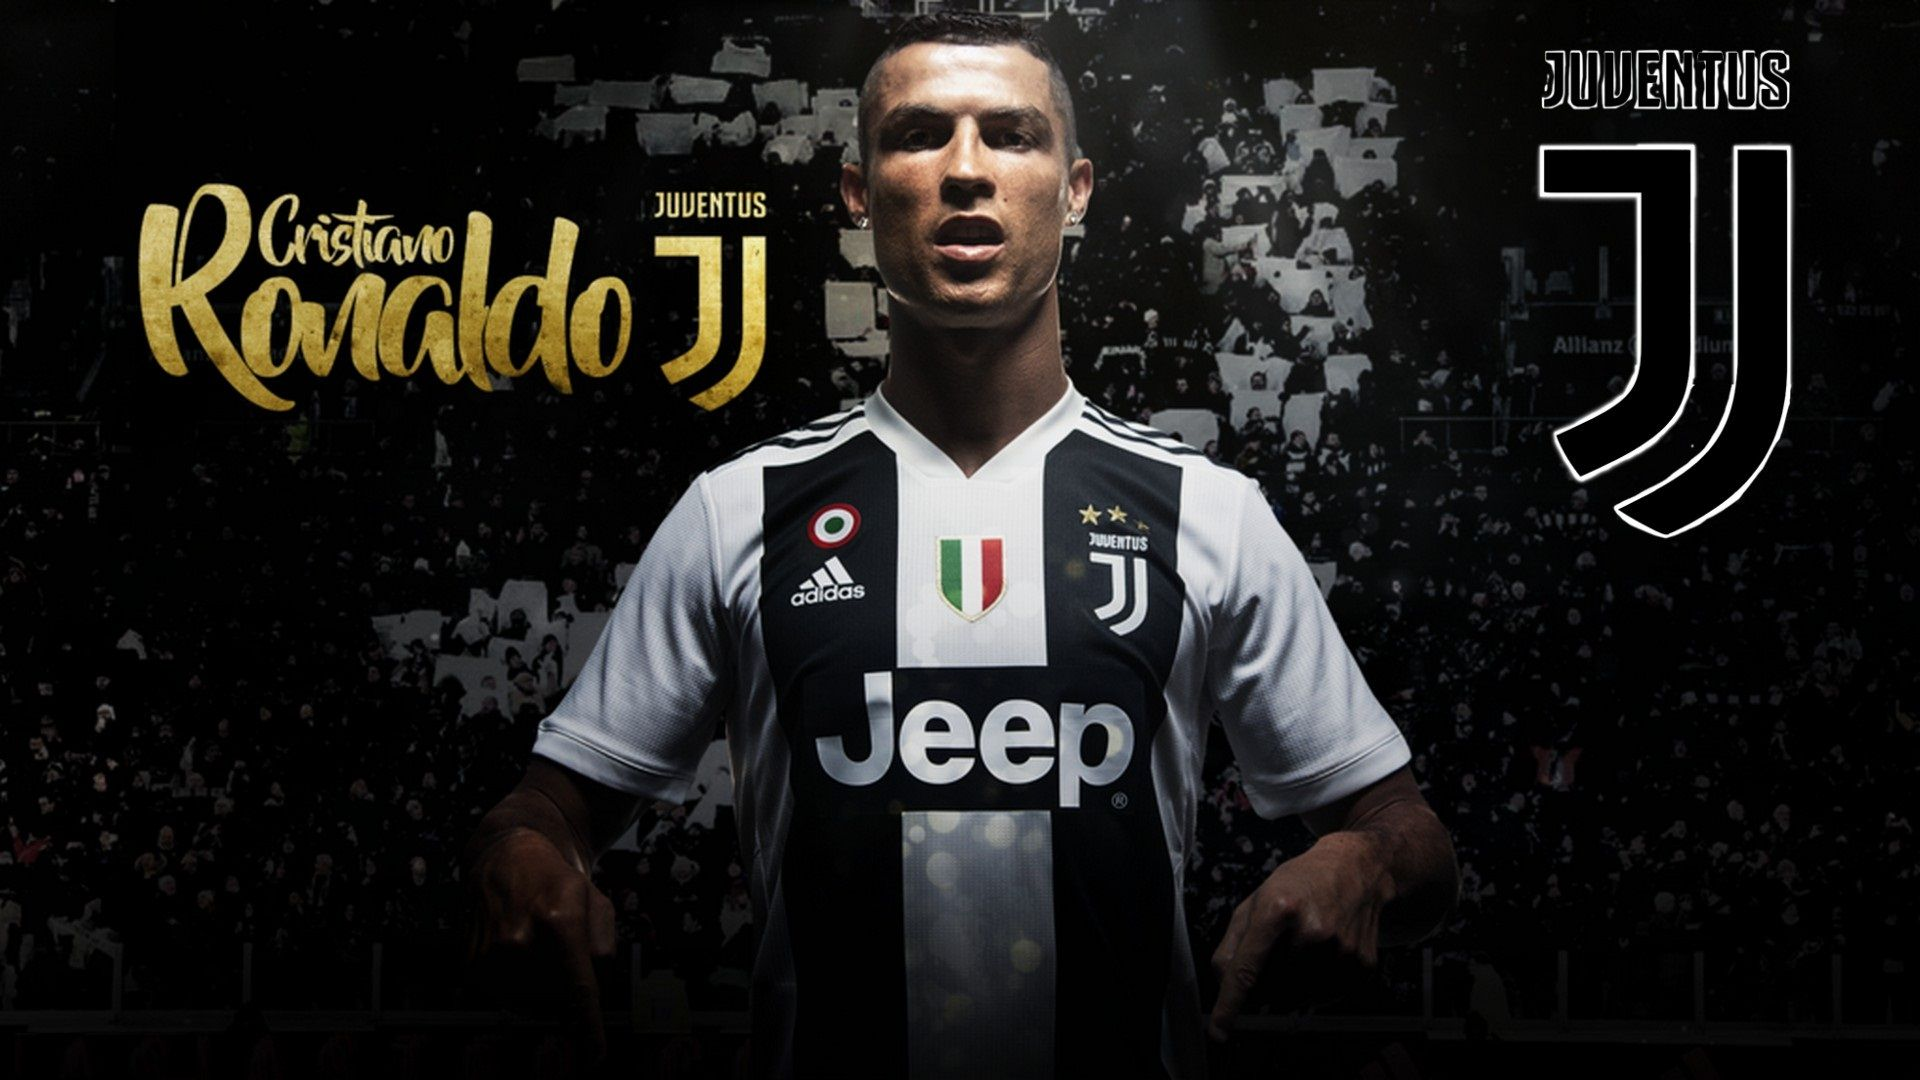 Cristiano Ronaldo In Juventus Hd Wallpapers New Tab Extension This Is Fresh New Wallpaper Extension Hd T Ronaldo Wallpapers Ronaldo Juventus Cristiano Ronaldo